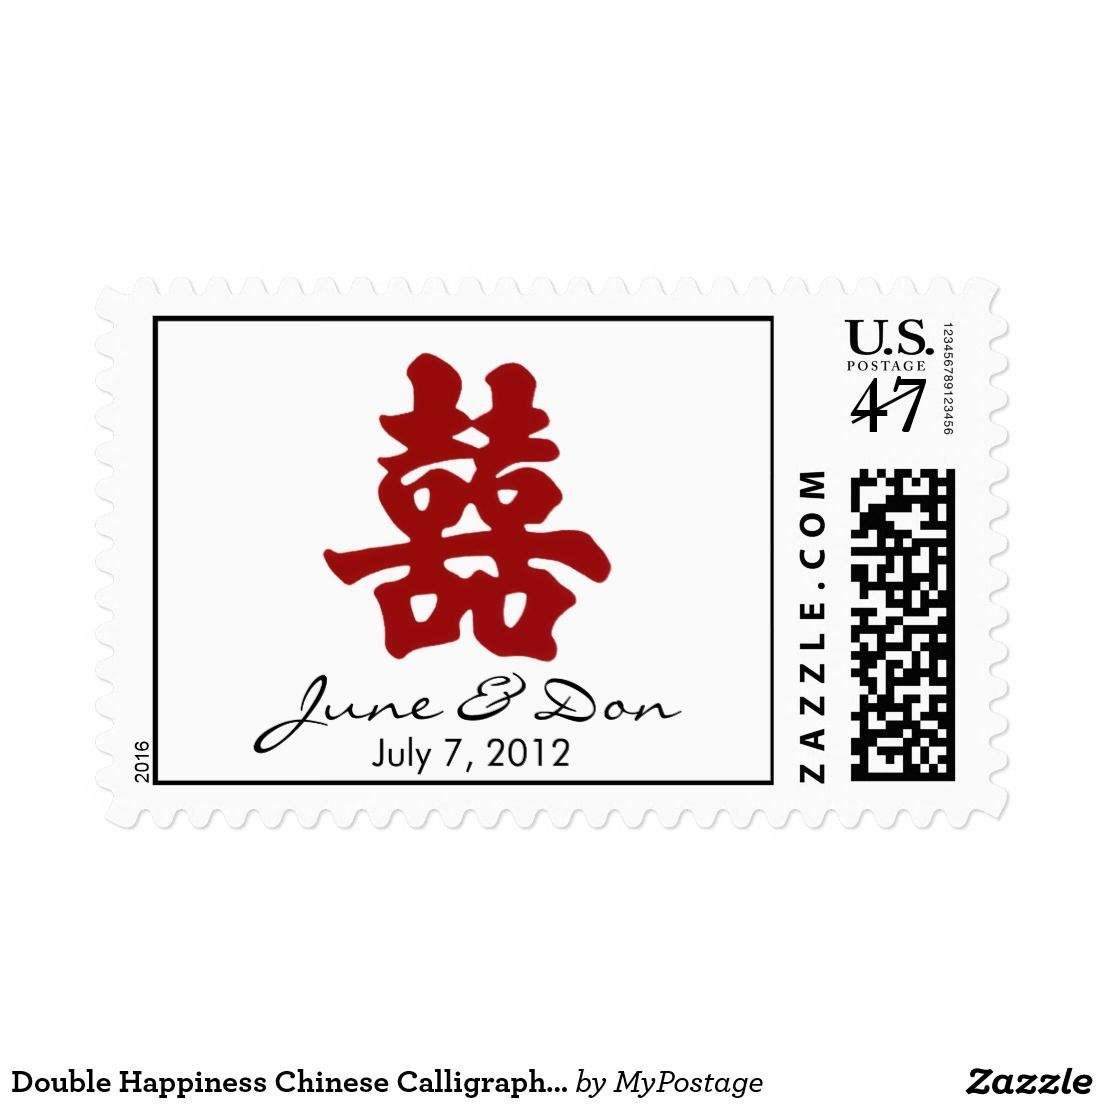 Double Happiness Chinese Calligraphy Wedding Stamp